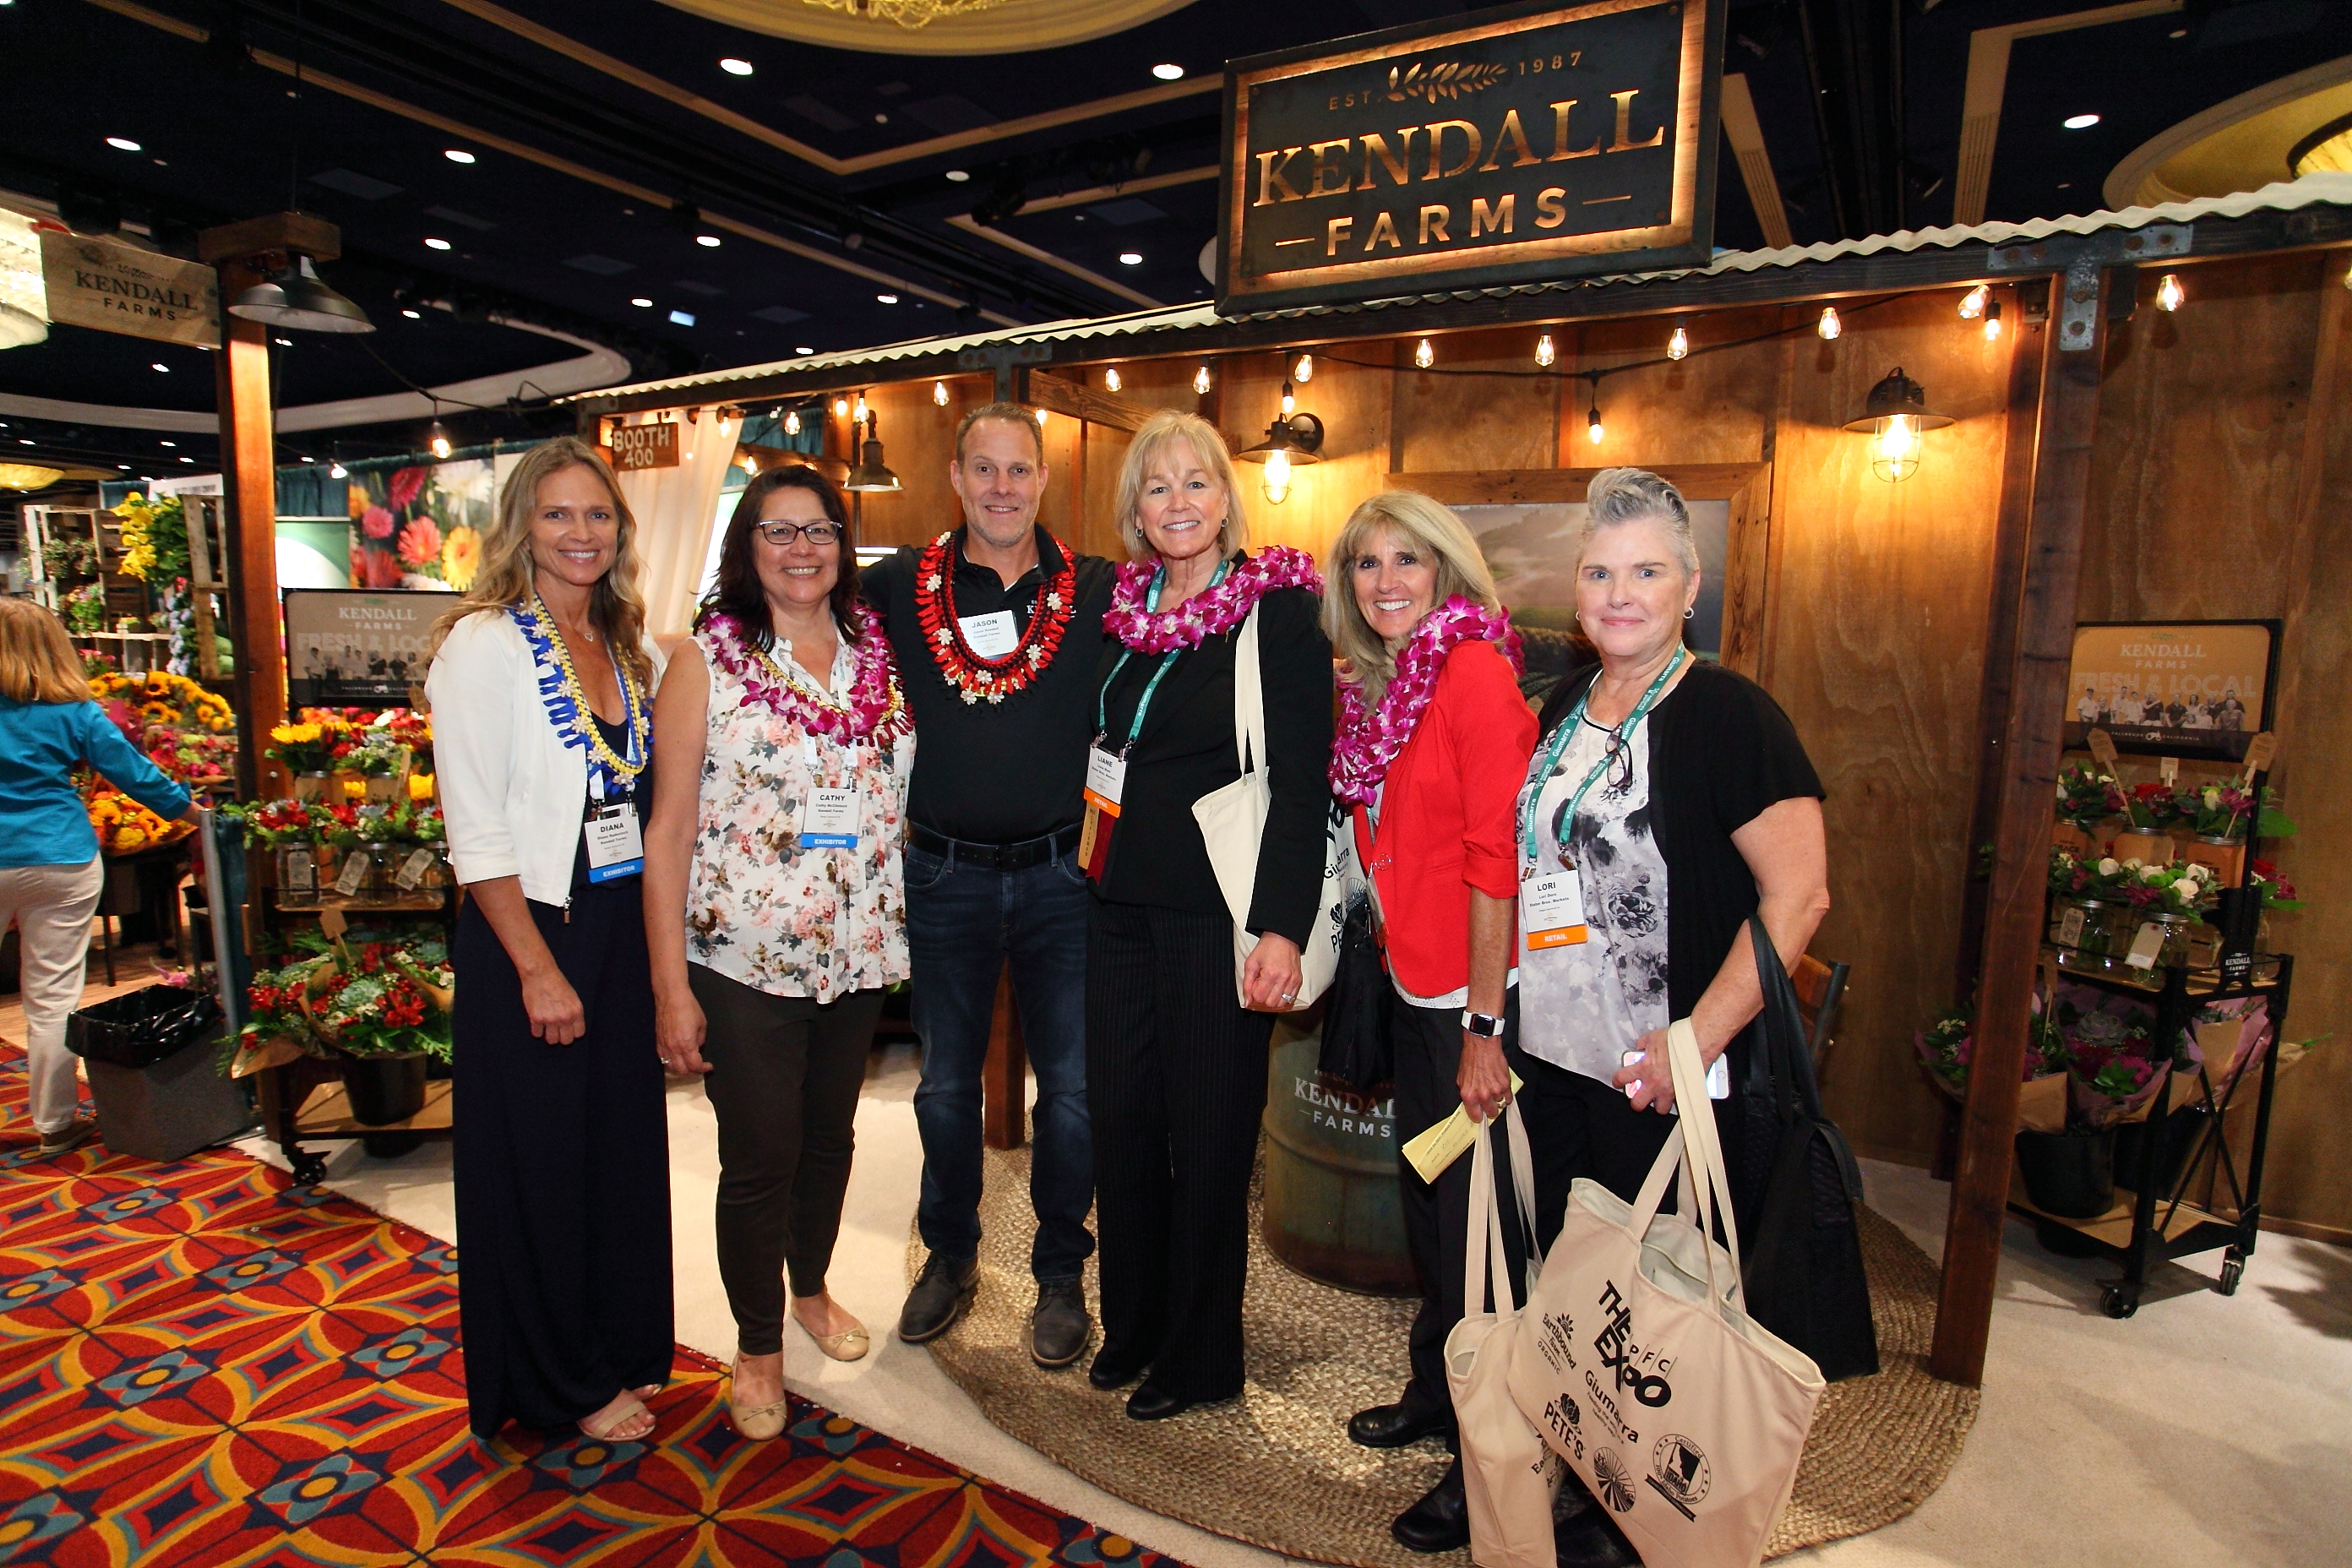 Diana Radestock, Cathy McClintock and Jason Kendall from Kendall Farms with Liane Mast, Cindy Schmitz and Lori Doro from Stater Bros. Markets